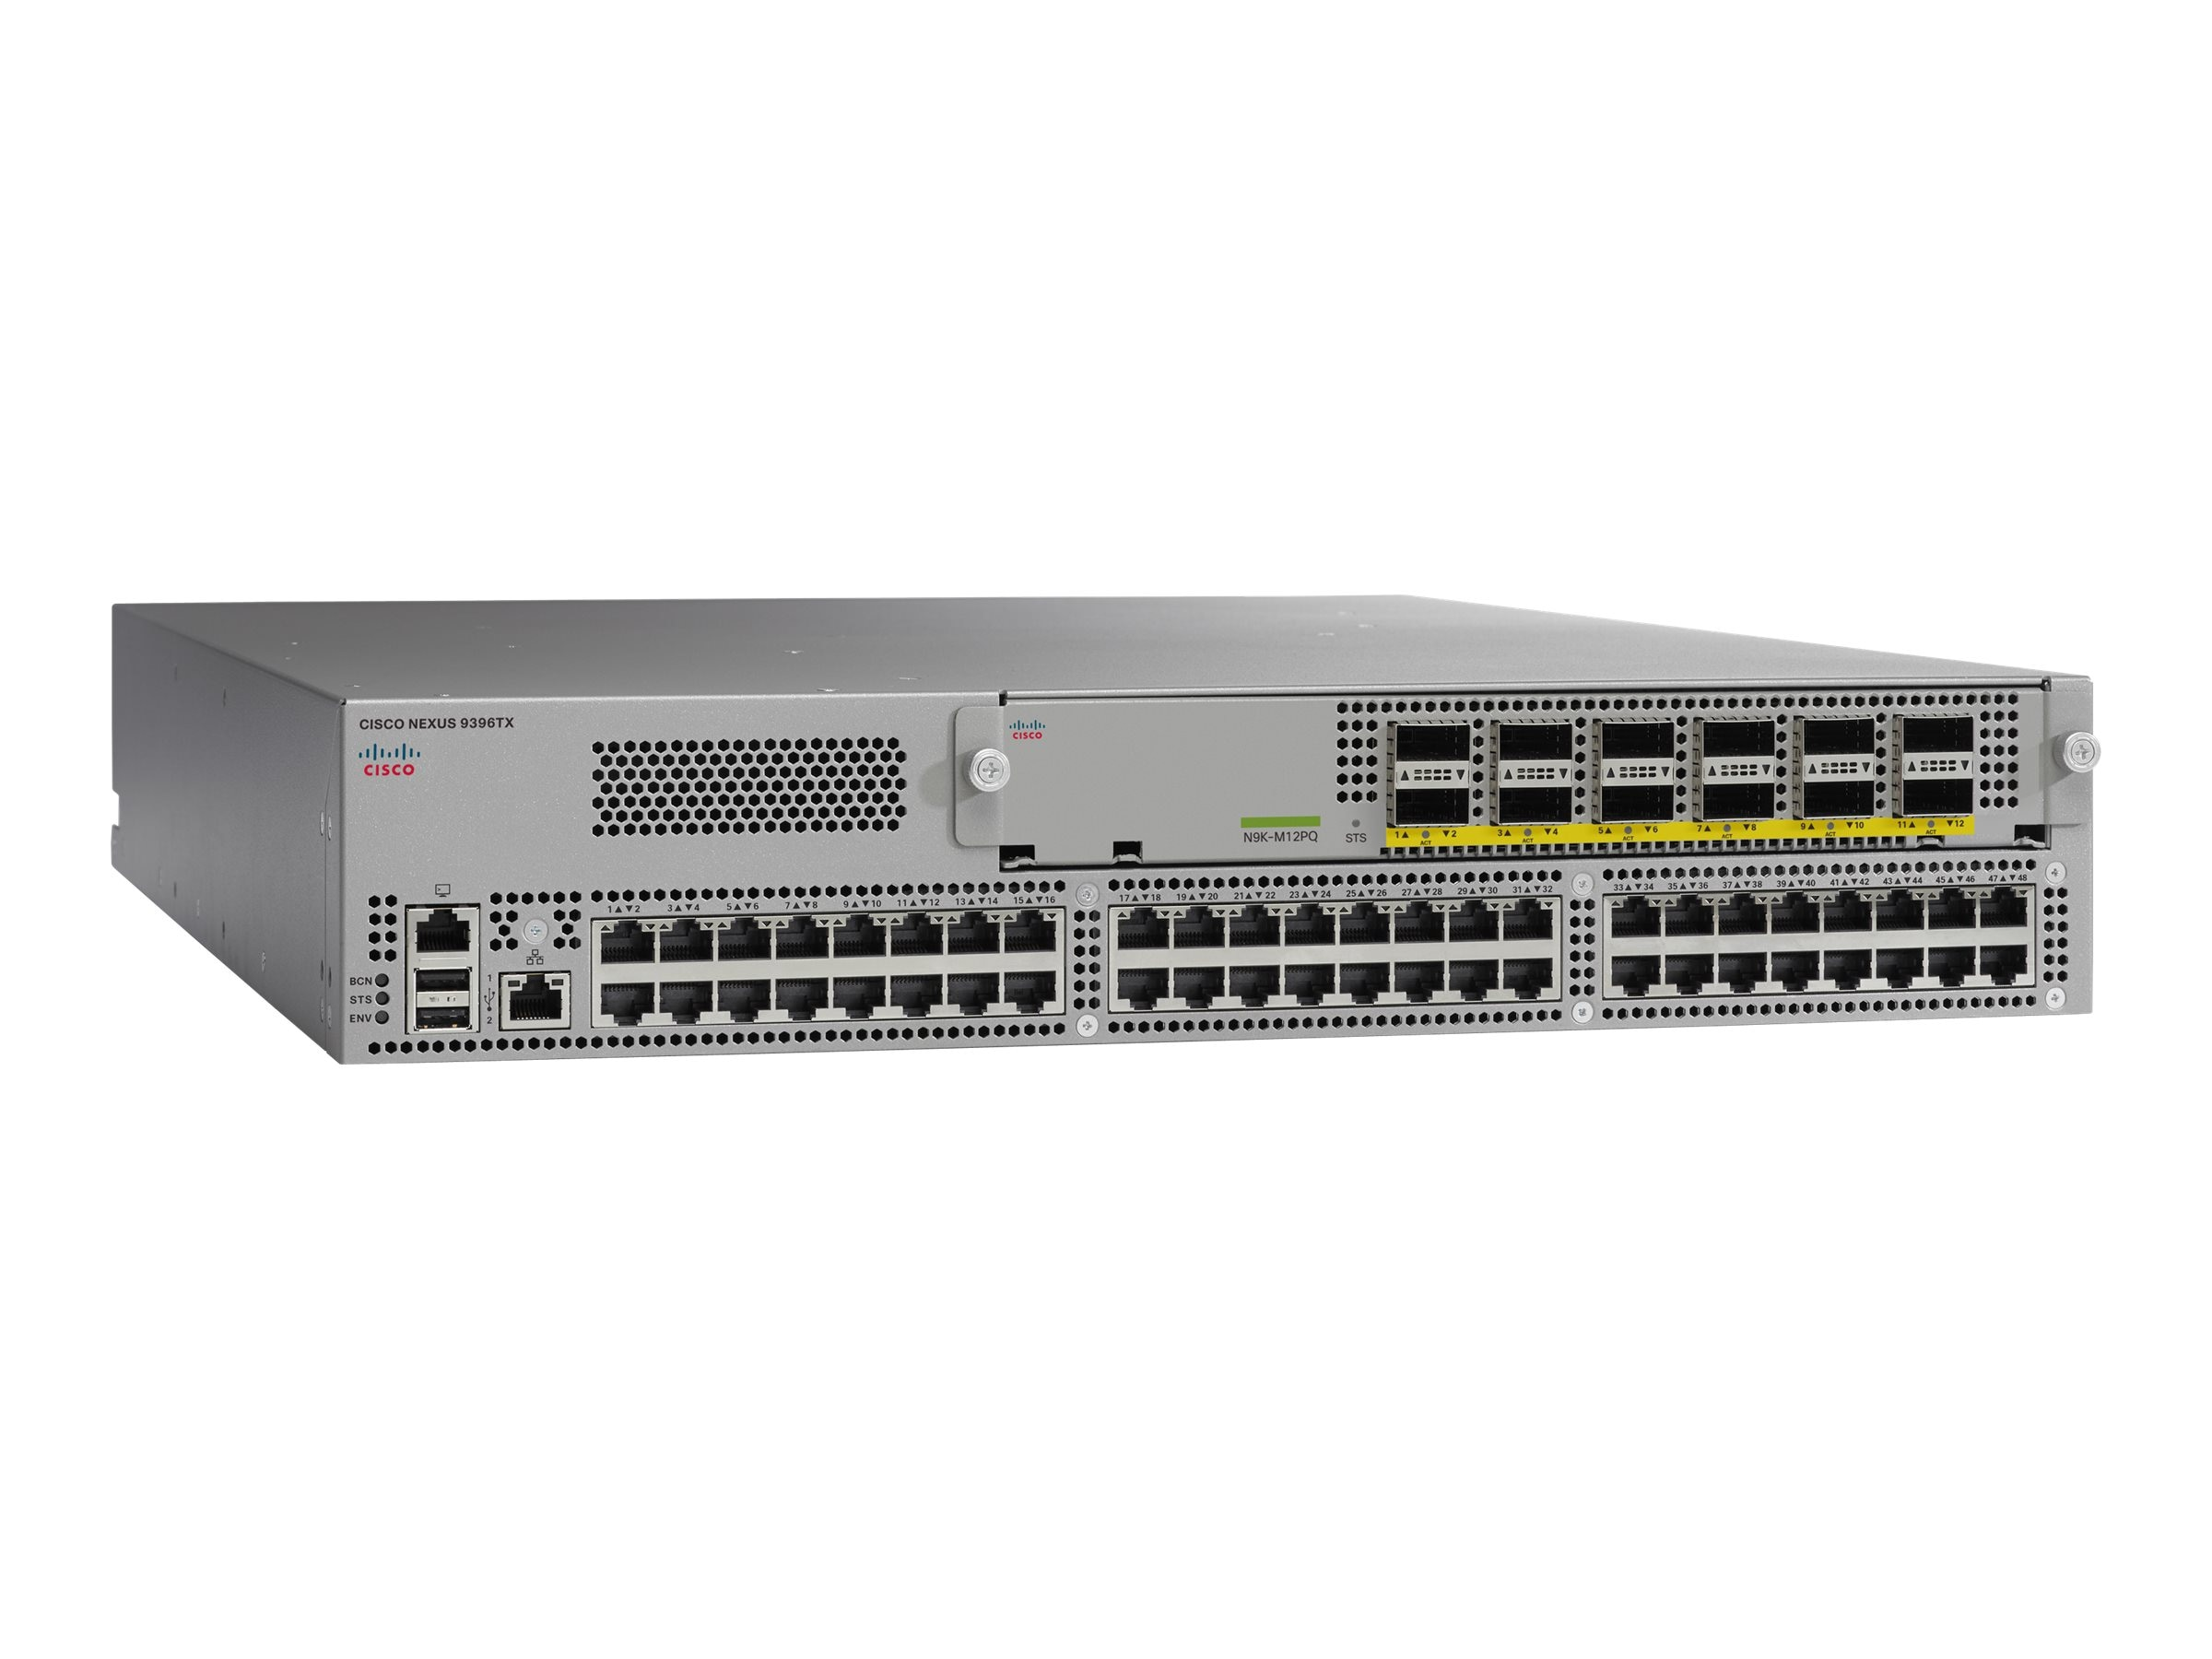 Cisco Nexus 9300 w 48-Port 1 10GBase-T & 8-Port 40G QSFP+, N9K-C9396TX, 30755181, Network Switches